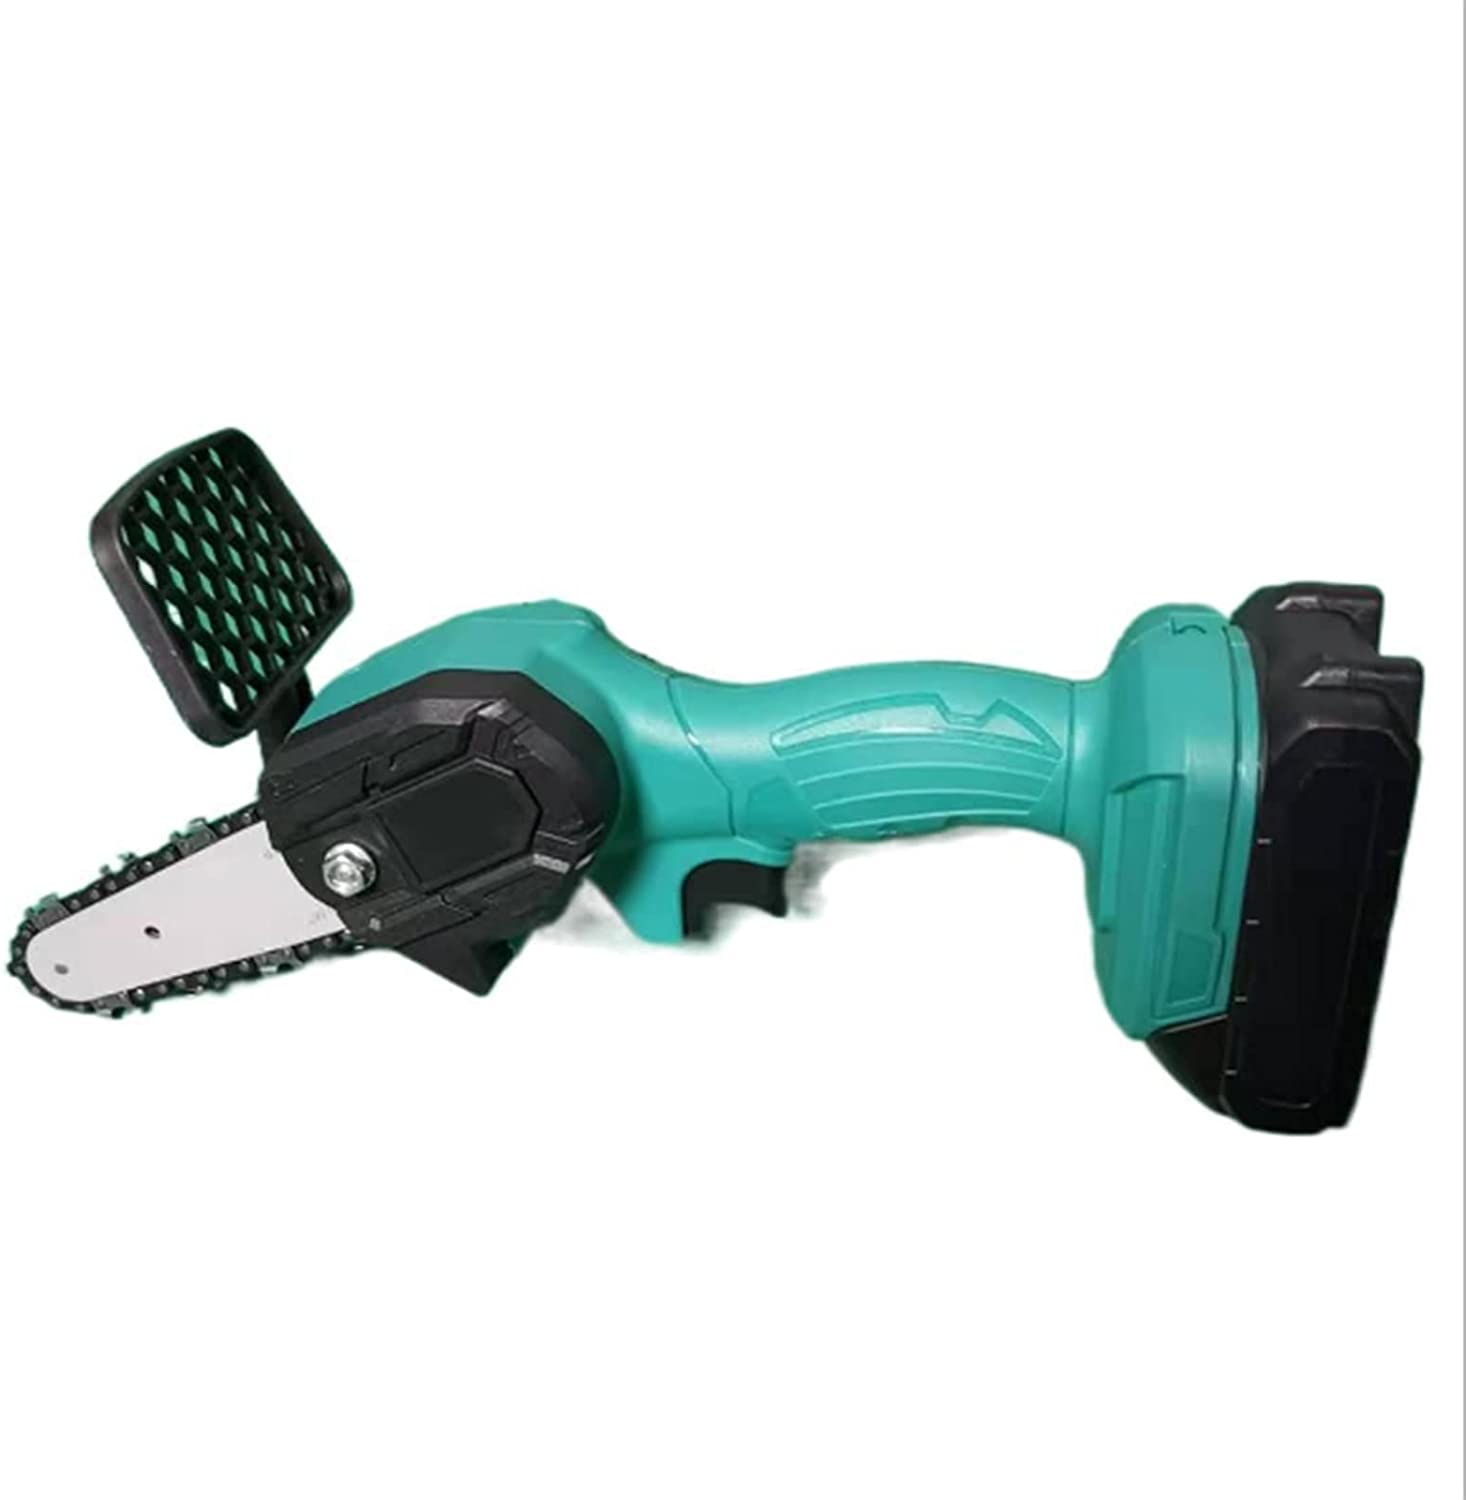 Tqing Seattle Mall Mini Electric It is very popular Chain Small Household Saw Cordless